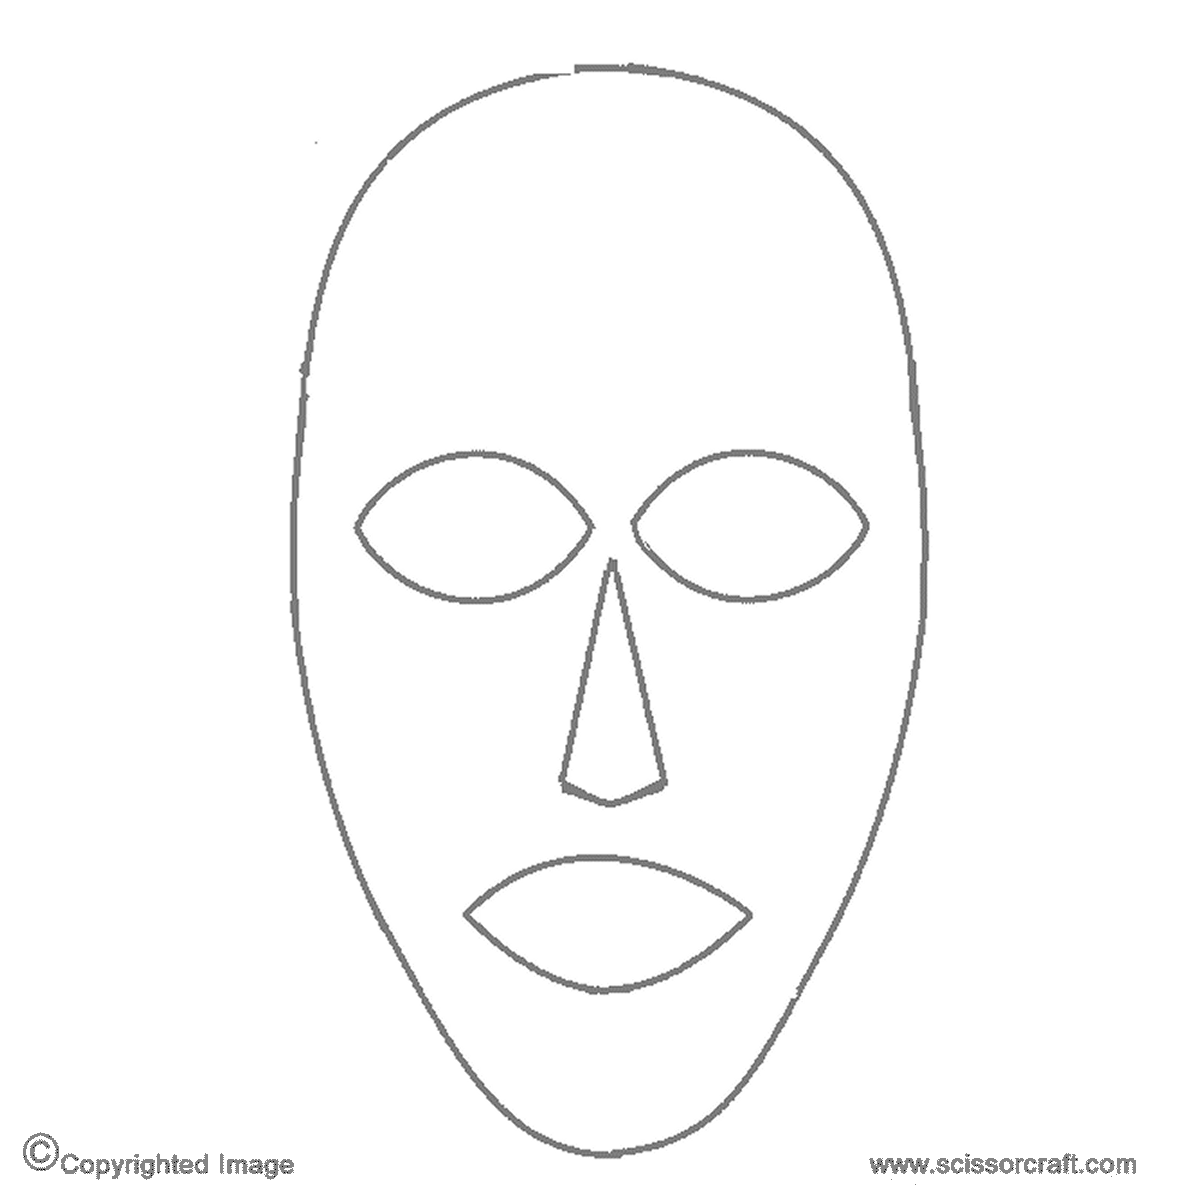 image relating to Printable Face referred to as 13 African Mask Template Photos - African Mask Coloring